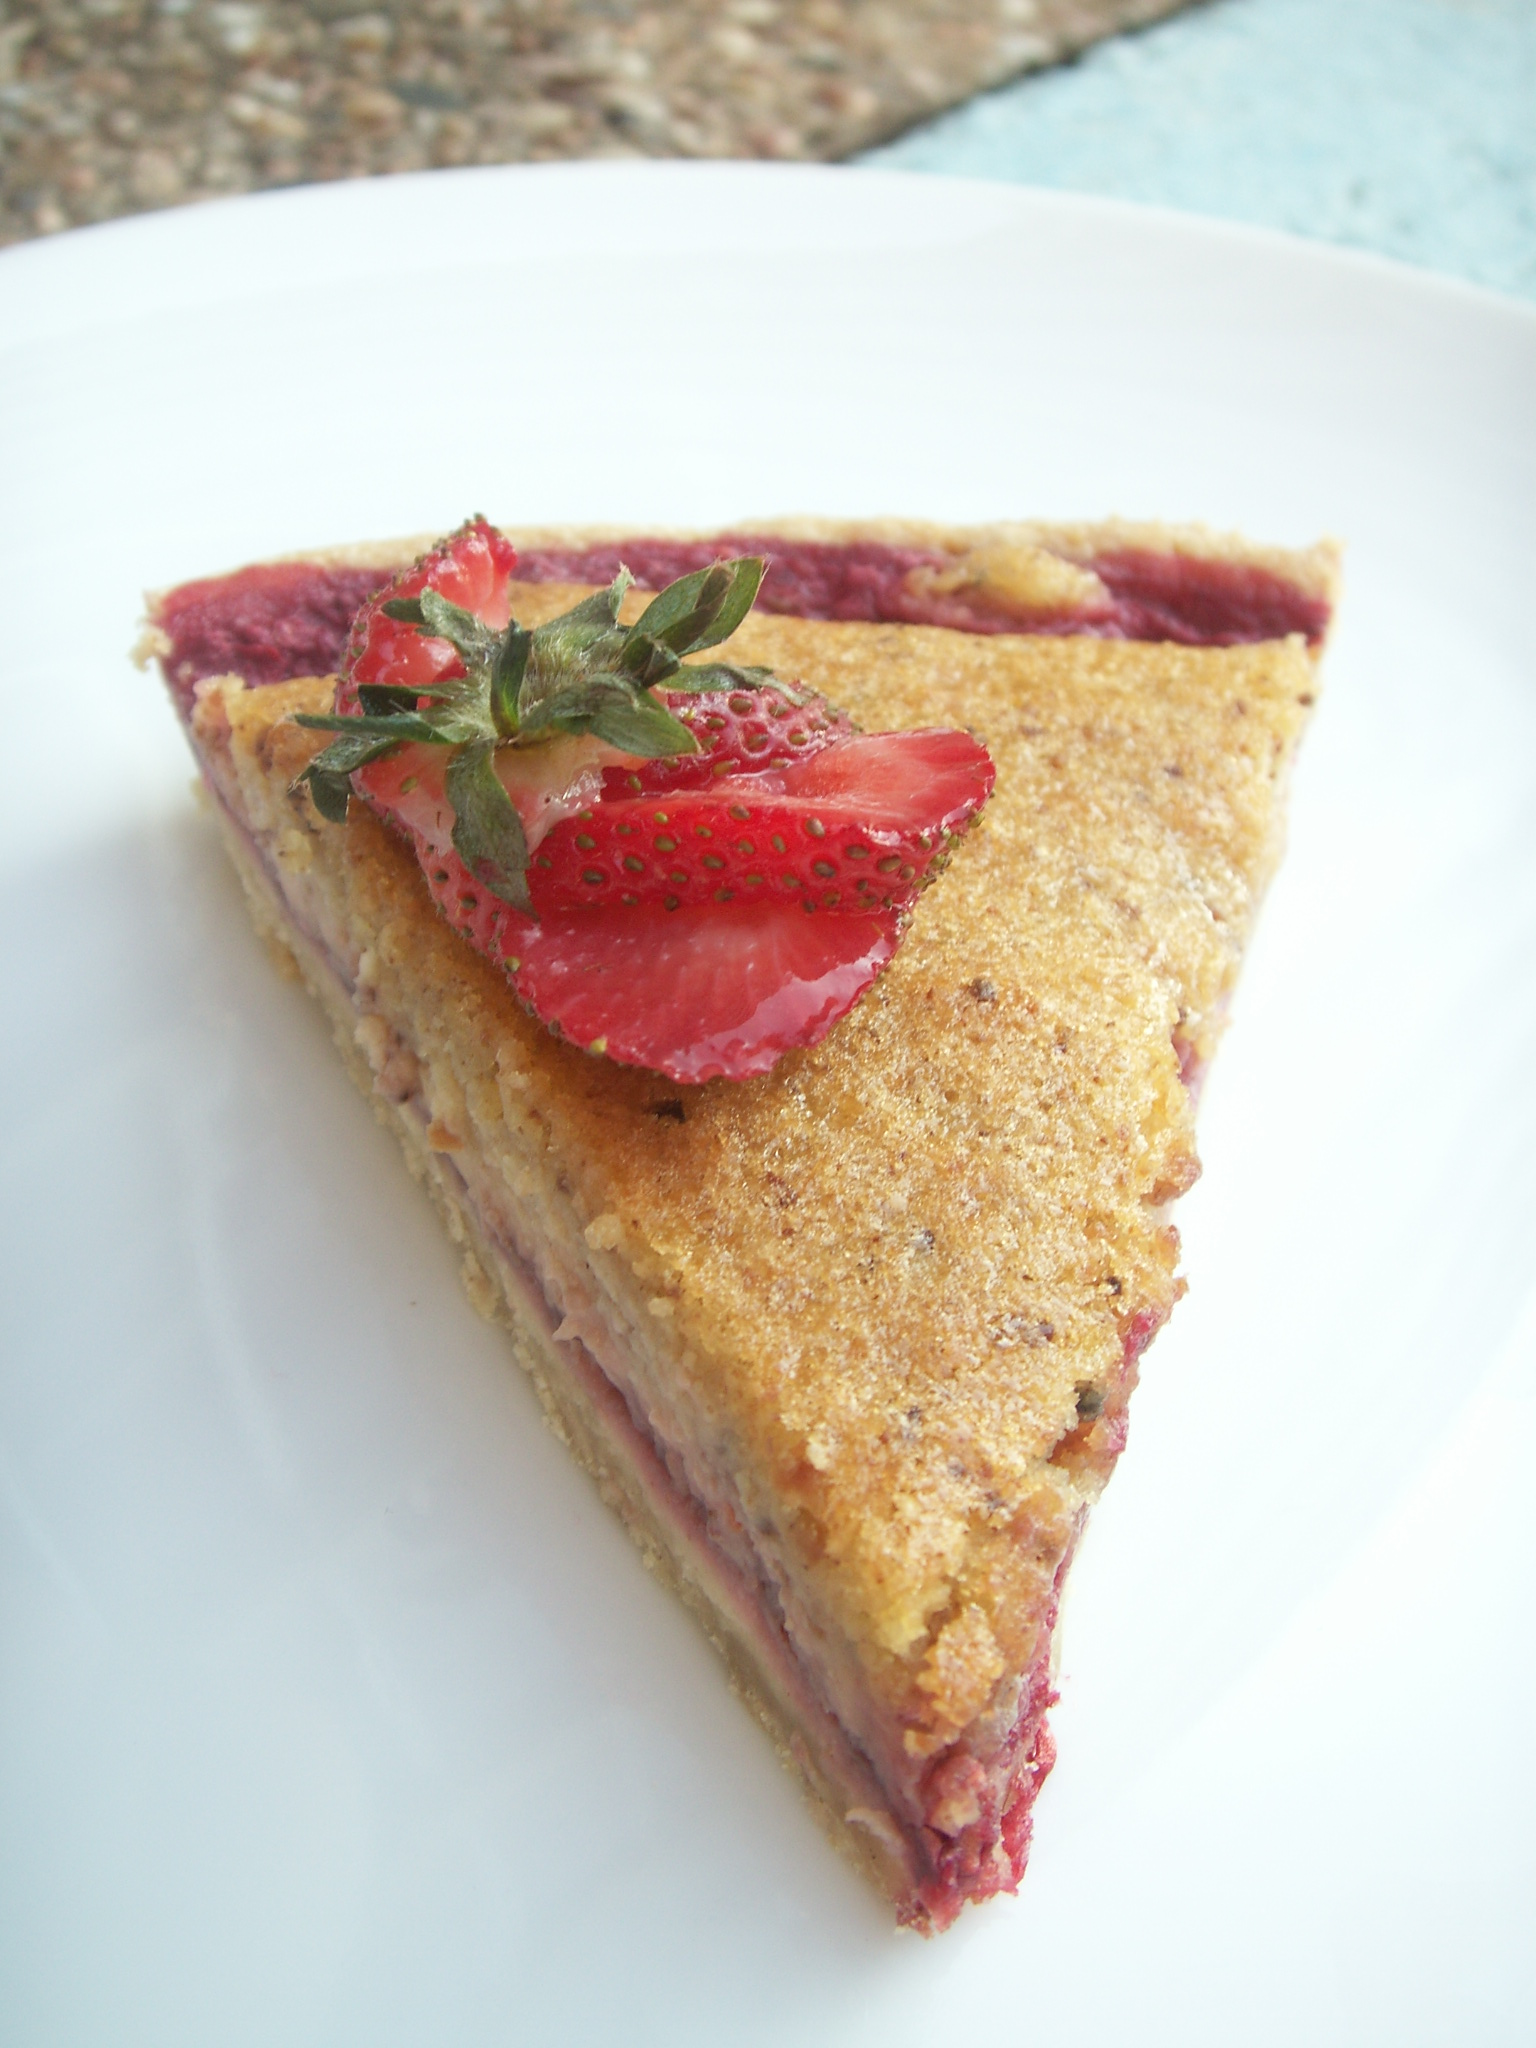 Raspberry-Strawberry & Almond Tarte